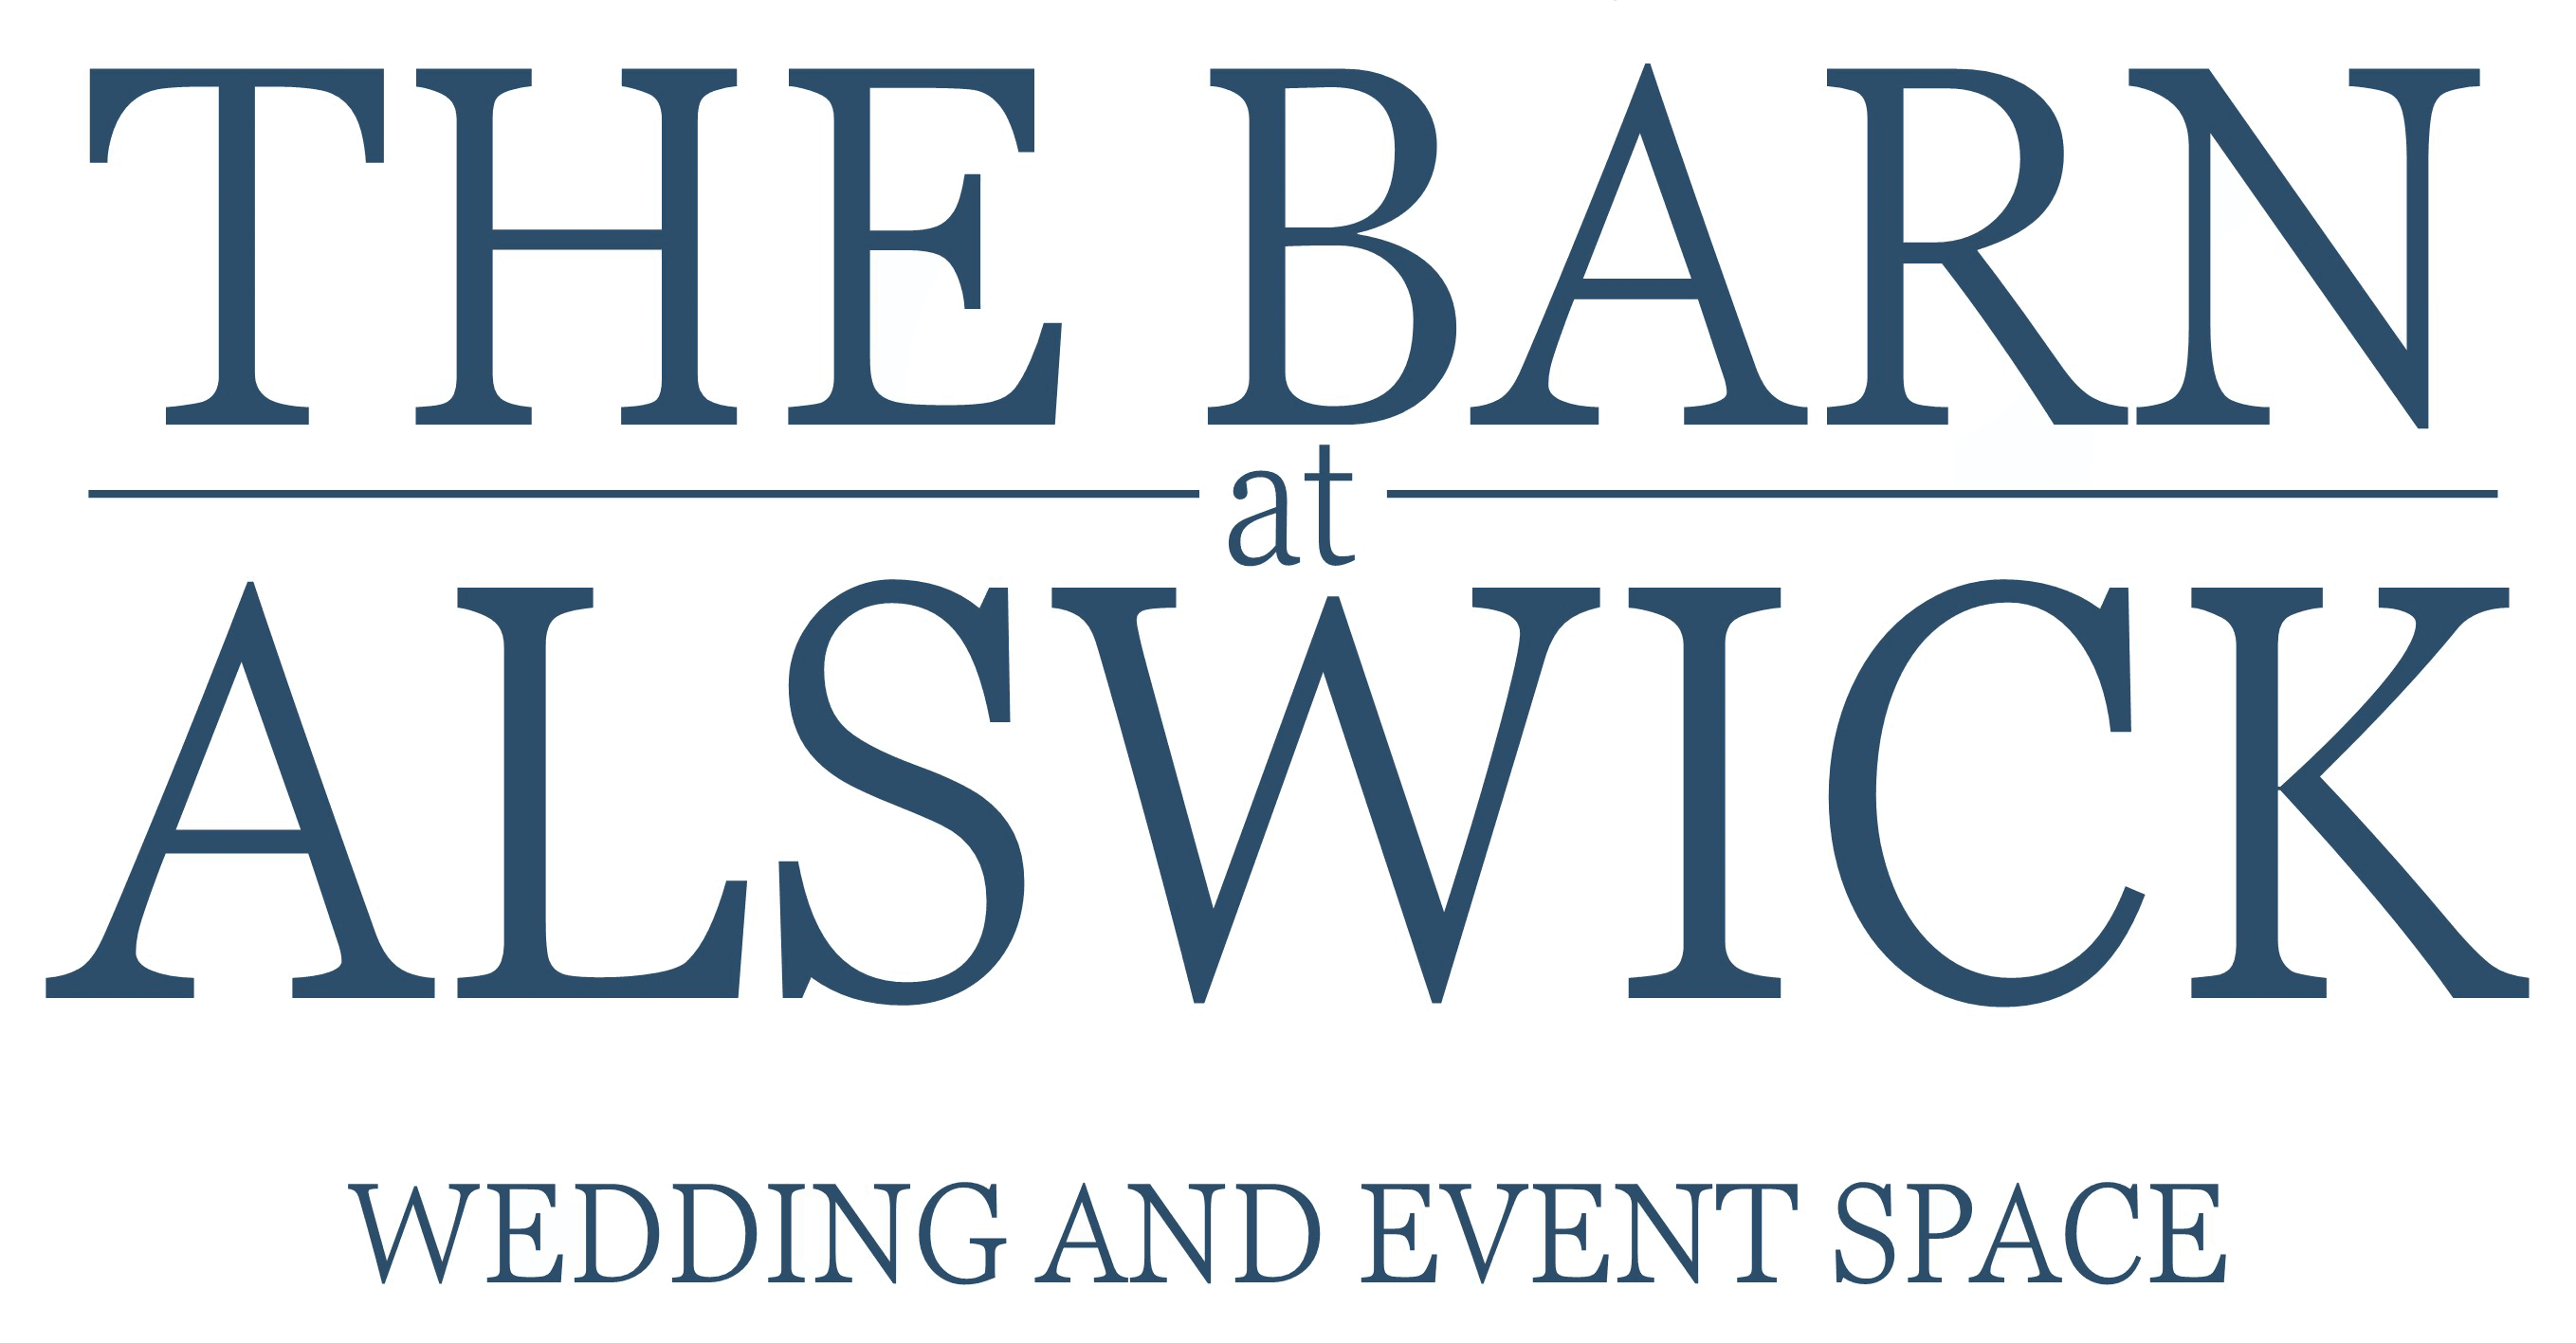 Wedding and Event Space - The Barn at Alswick